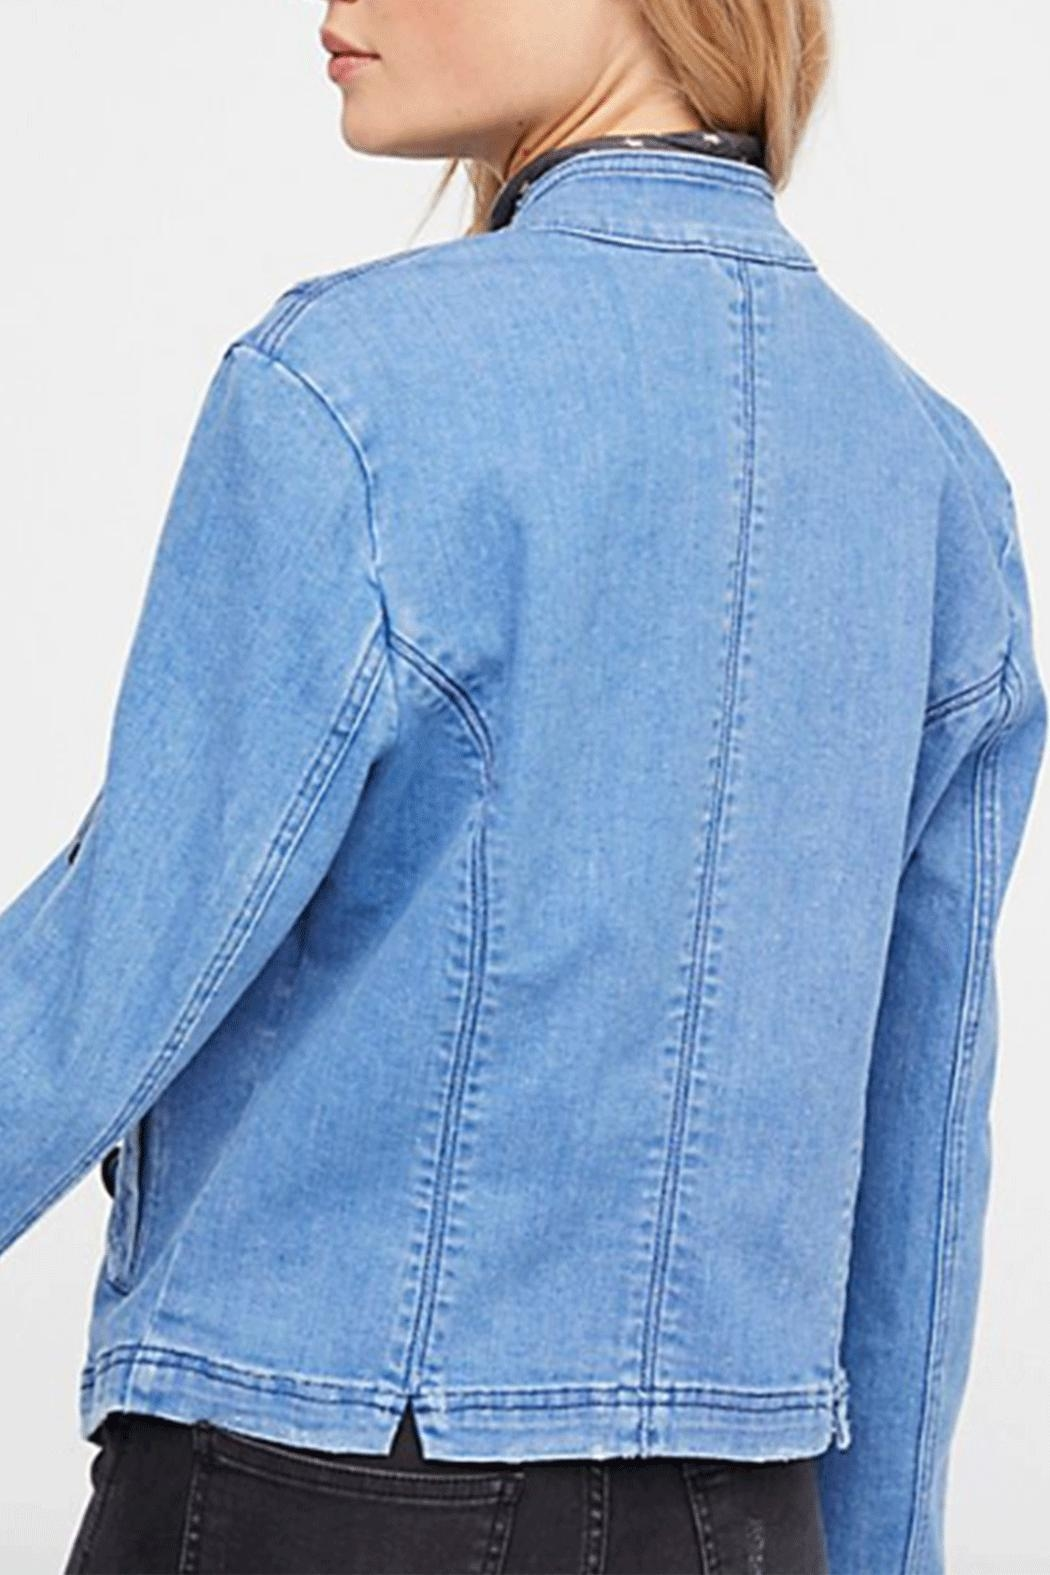 Free People Military Denim Jacket - Side Cropped Image